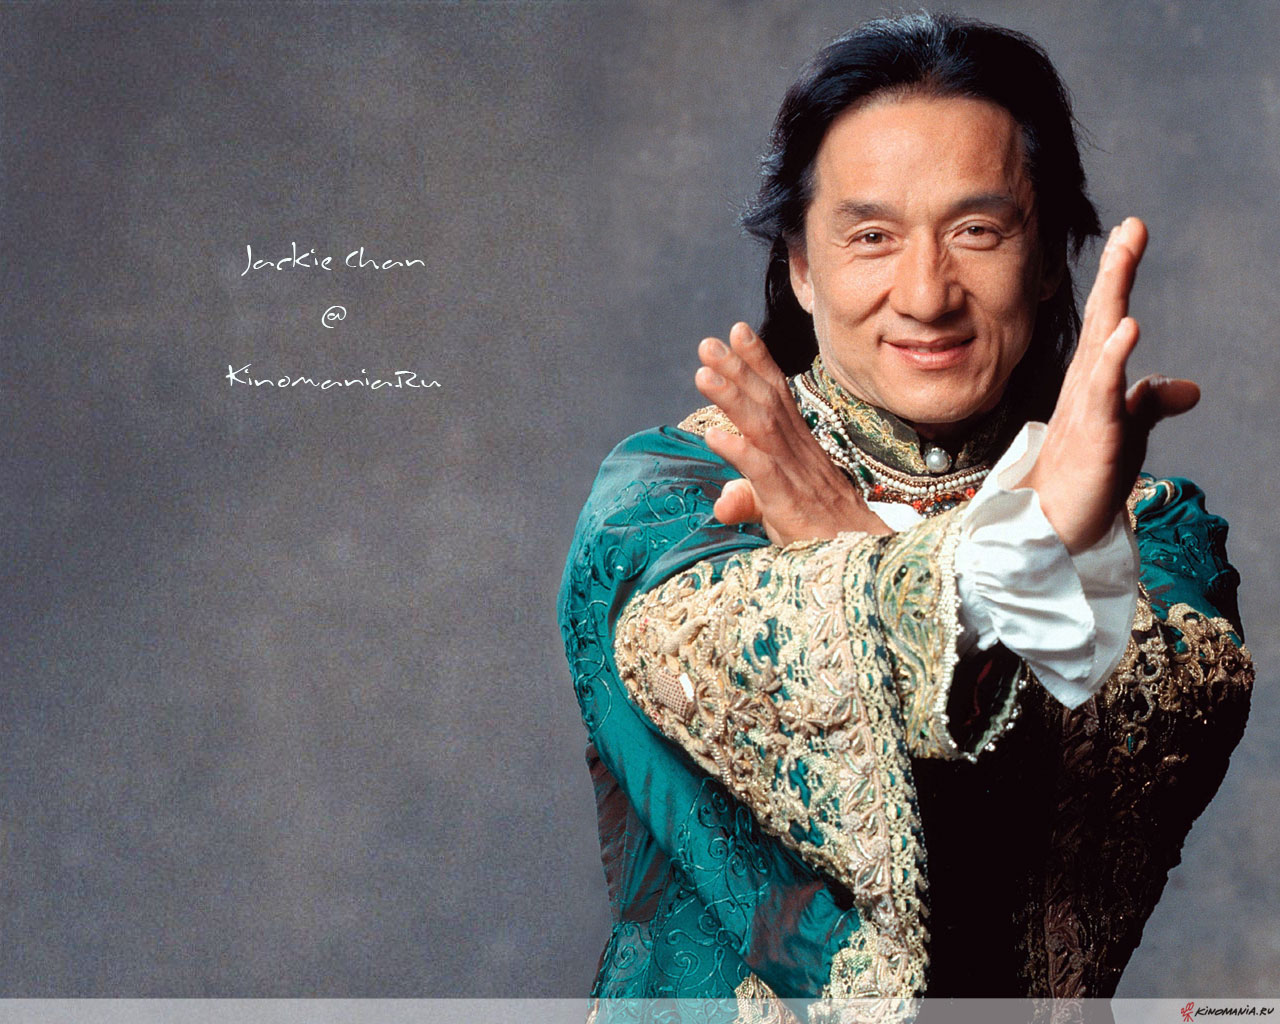 1280x1024 - Jackie Chan Wallpapers 19